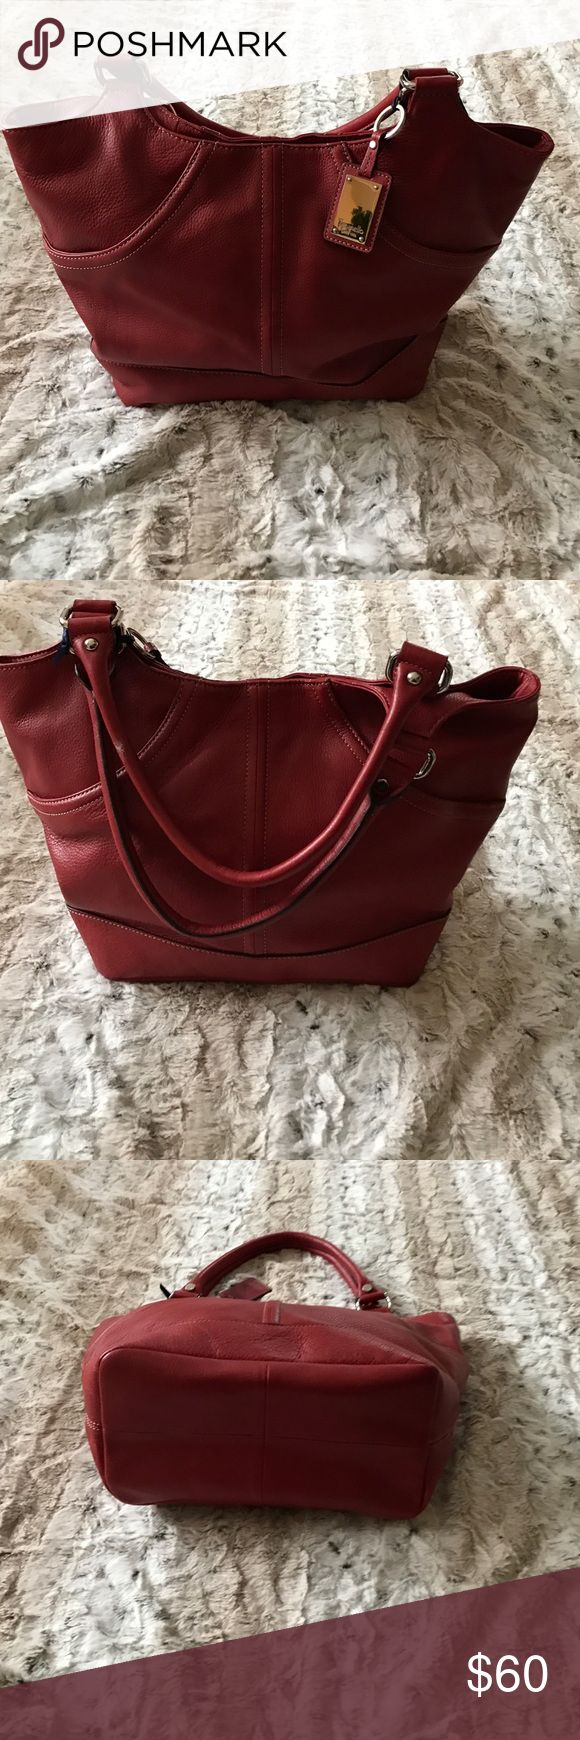 TIGNANELLO LEATHER HANDBAG Excellent Condition. No offline transactions or trades. Reasonable offers via offer option only Tignanello Bags